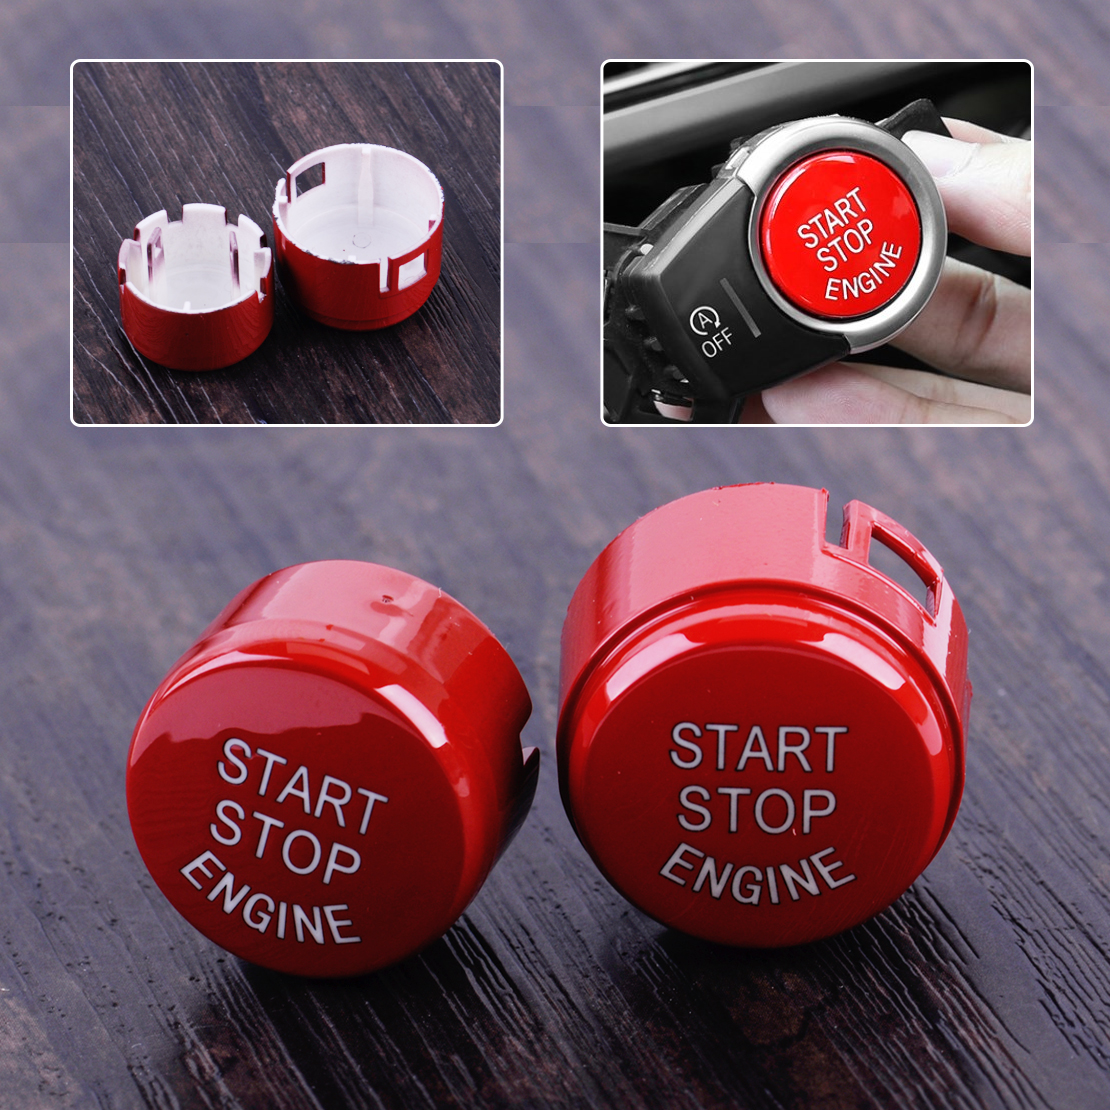 DWCX Car ABS RED Engine Start Stop Button Push Switch Replace Cover for BMW 1 2 3 4 5 6 7 Series F20 F30 F10 easyguard pke car alarm system remote engine start stop shock sensor push button start stop window rise up automatically